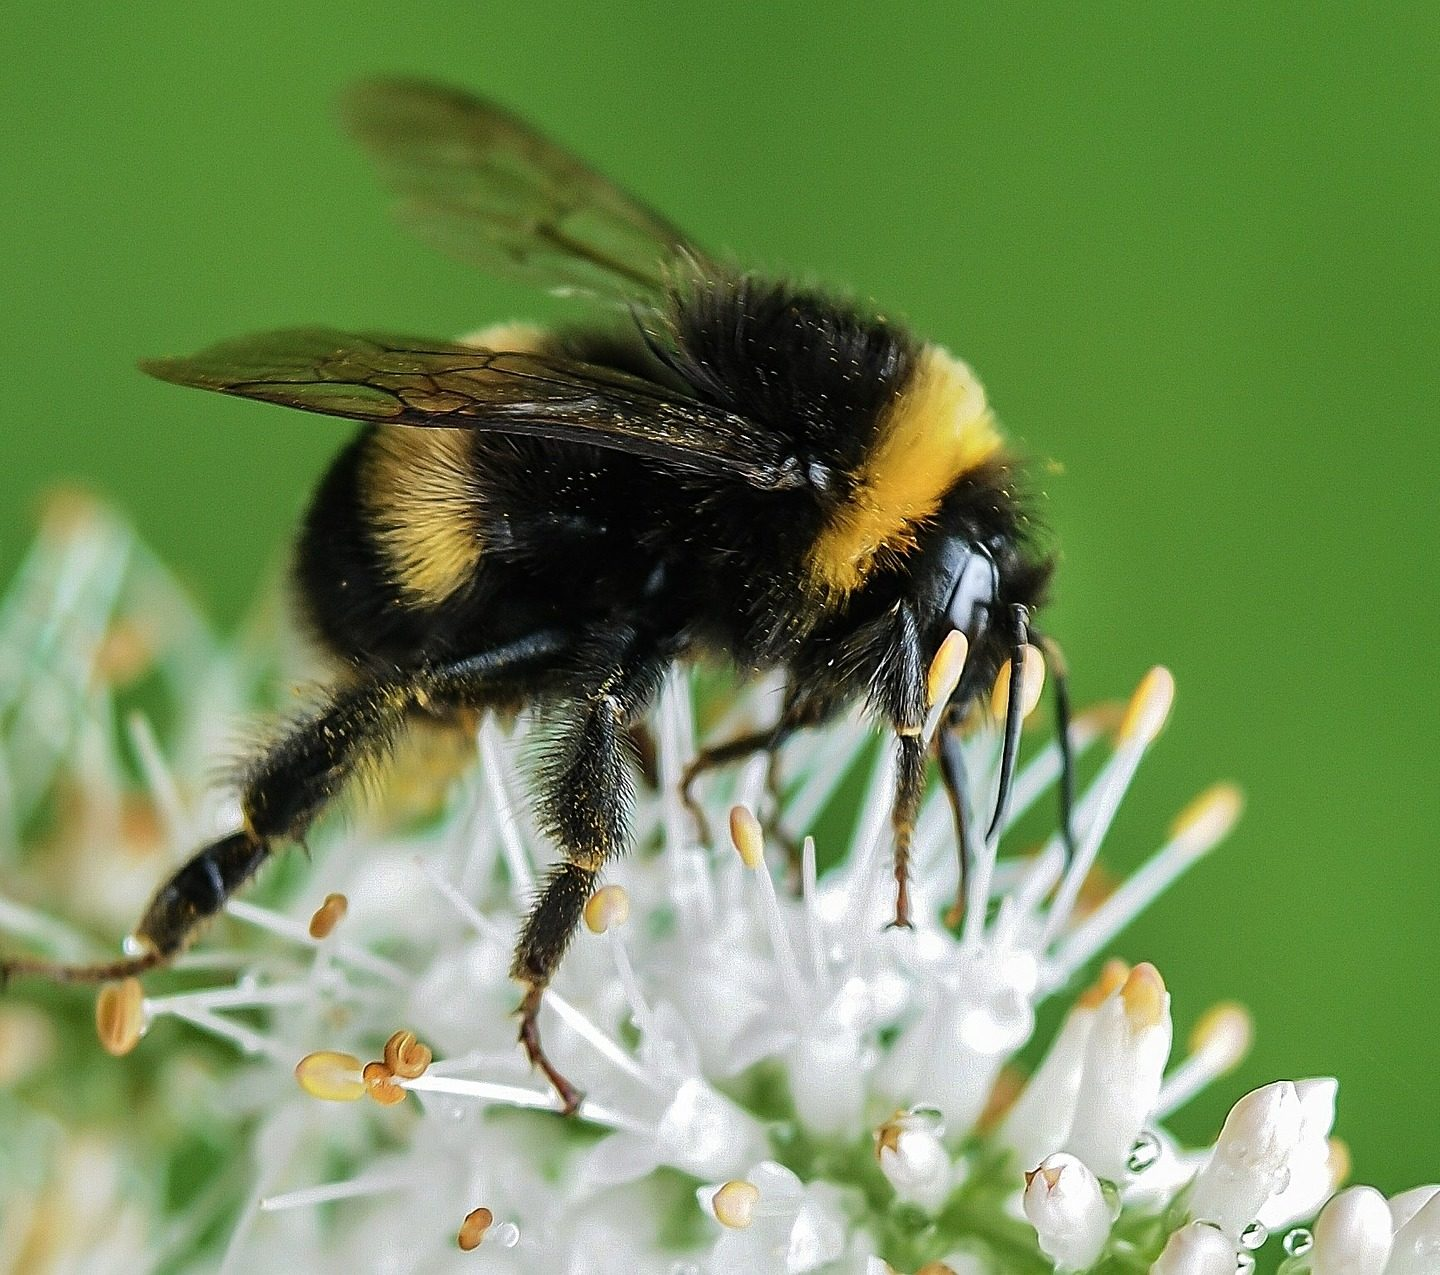 Bumblebees Poke Leaves to Help Flowers Bloom Faster